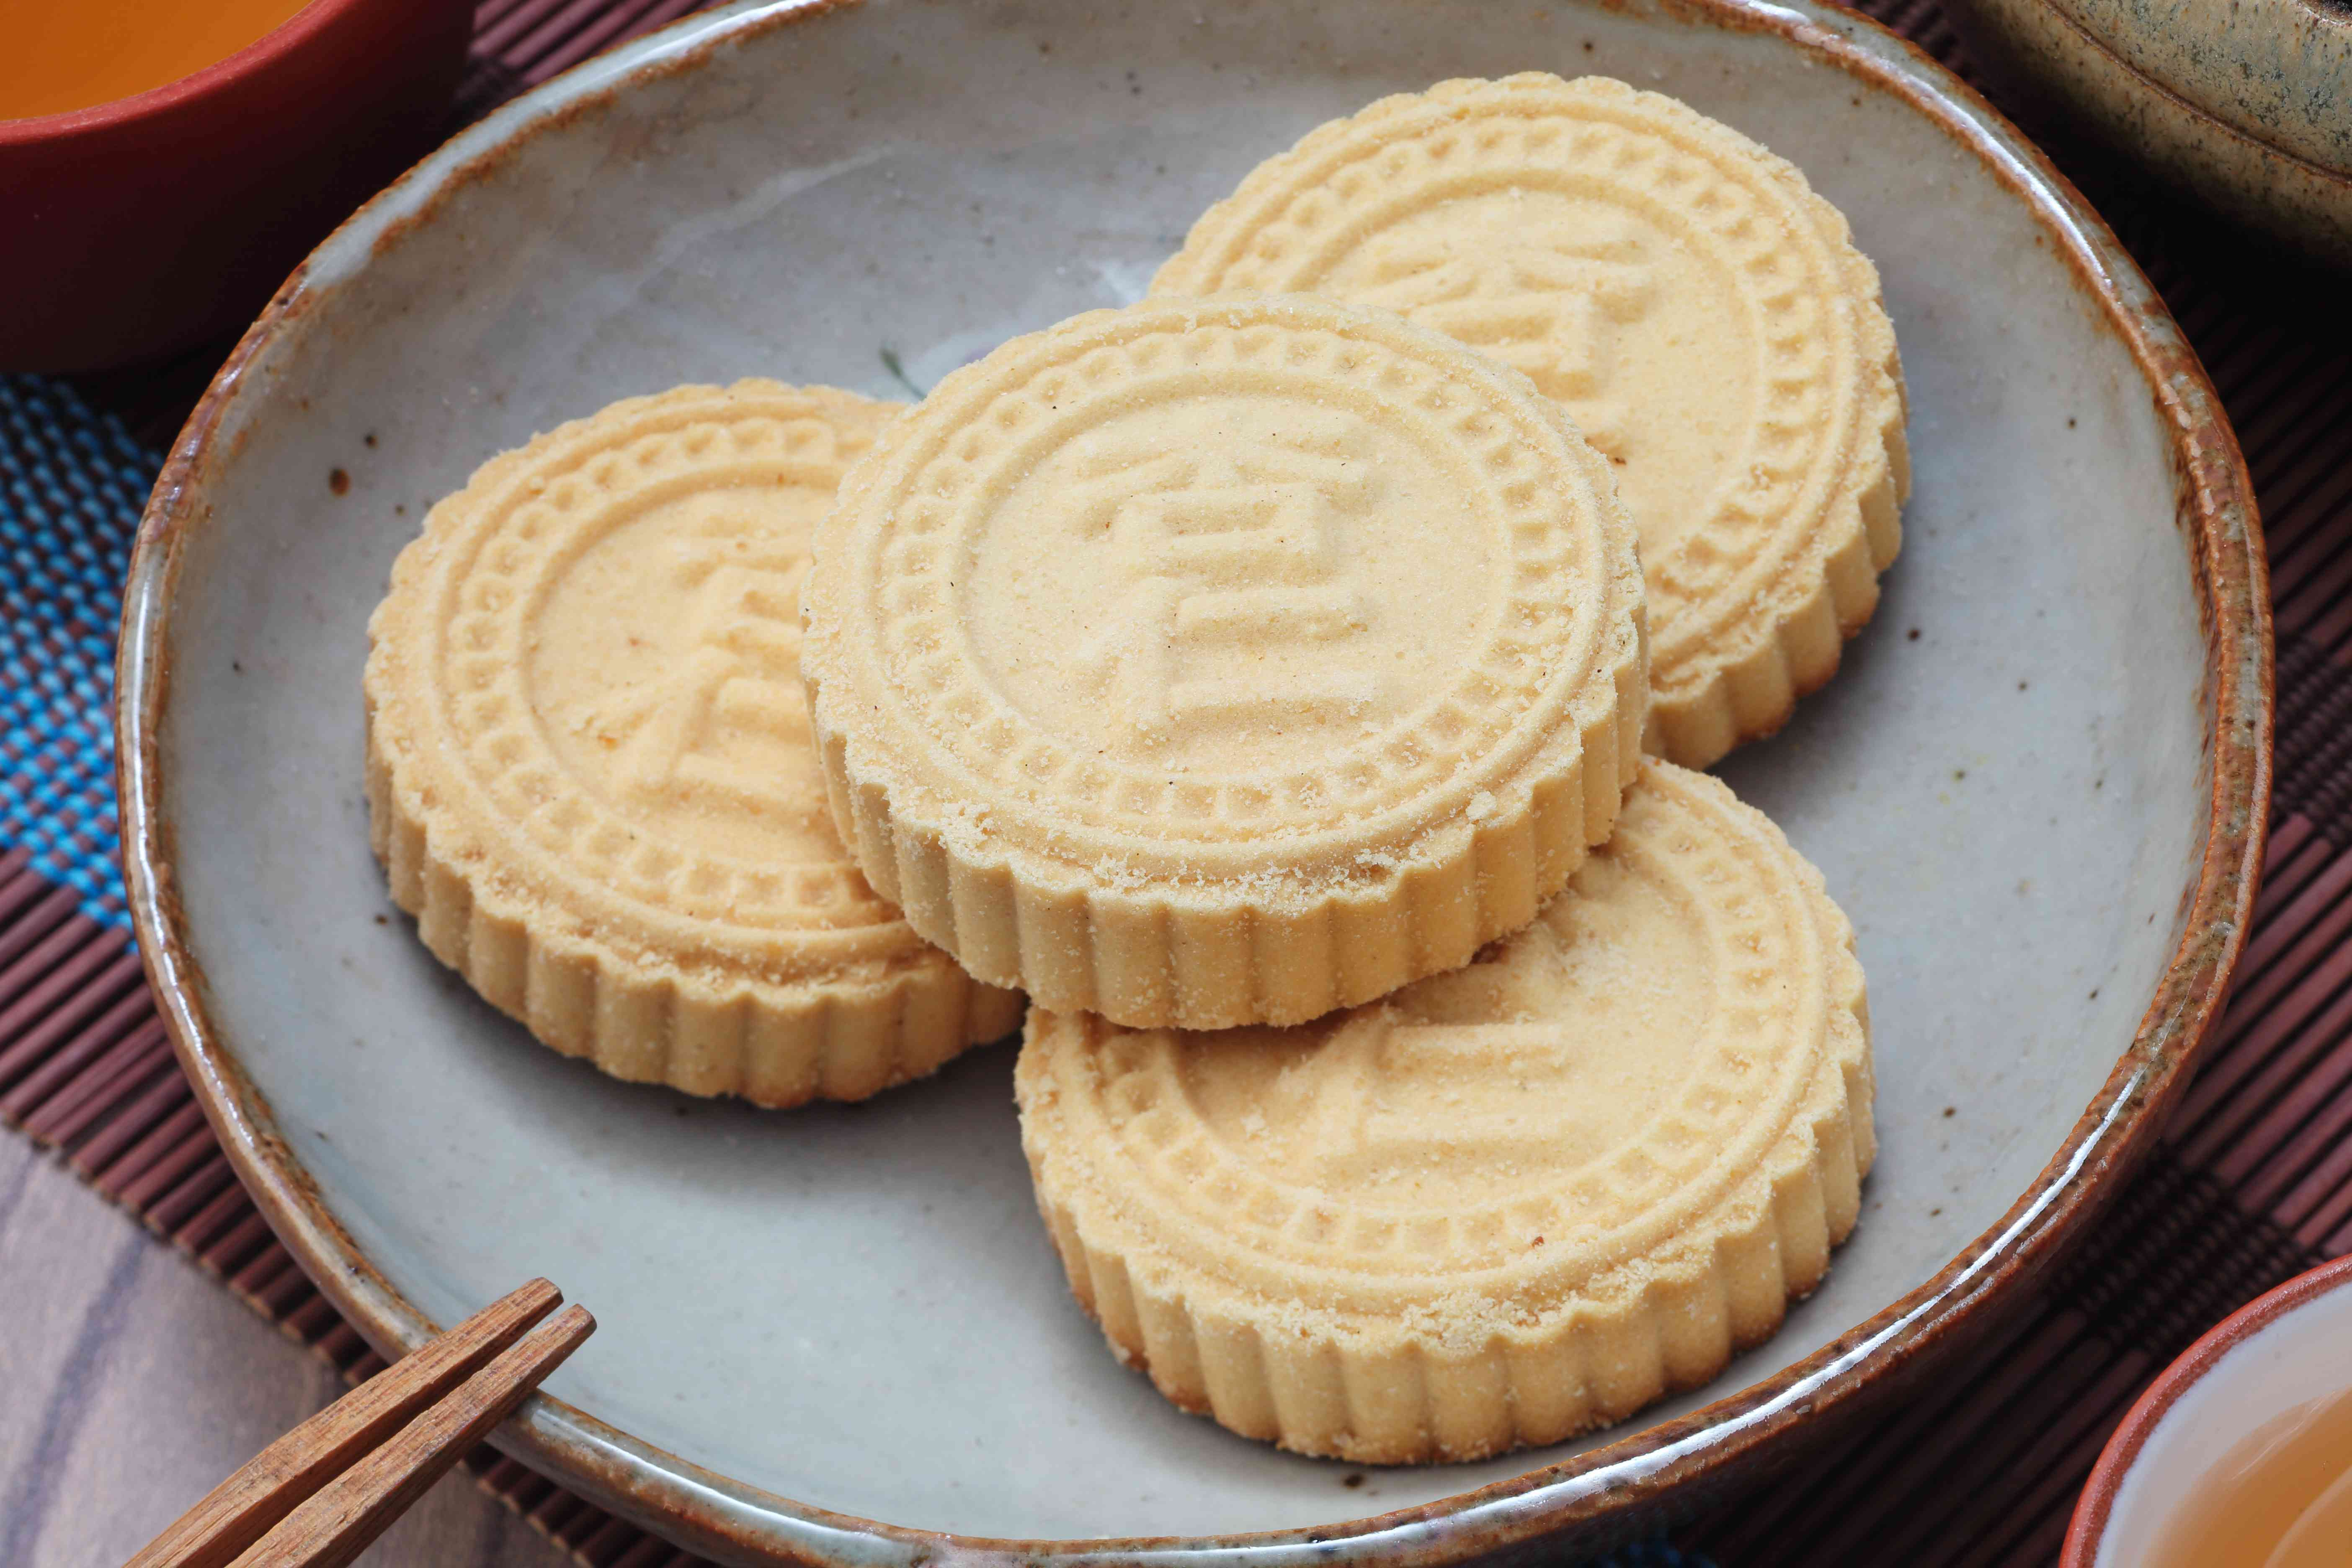 Famous Almond cookies from Macau, Chinese words on the almond cookie is 'almond', not a logo or trademark.